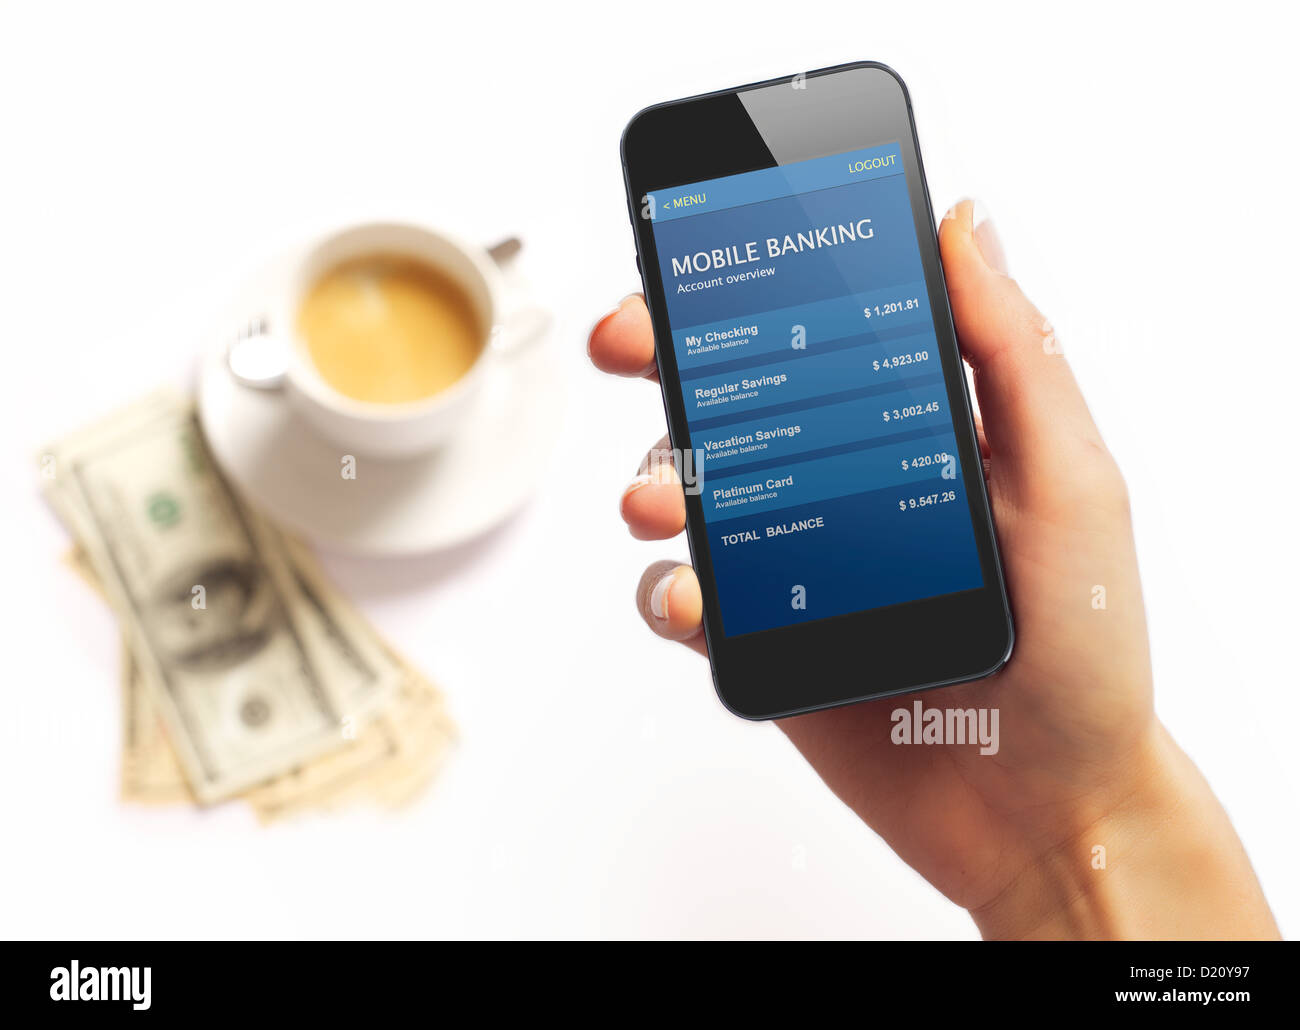 Smartphone with bank information on screen and coffee and dollar bills on the background - Stock Image